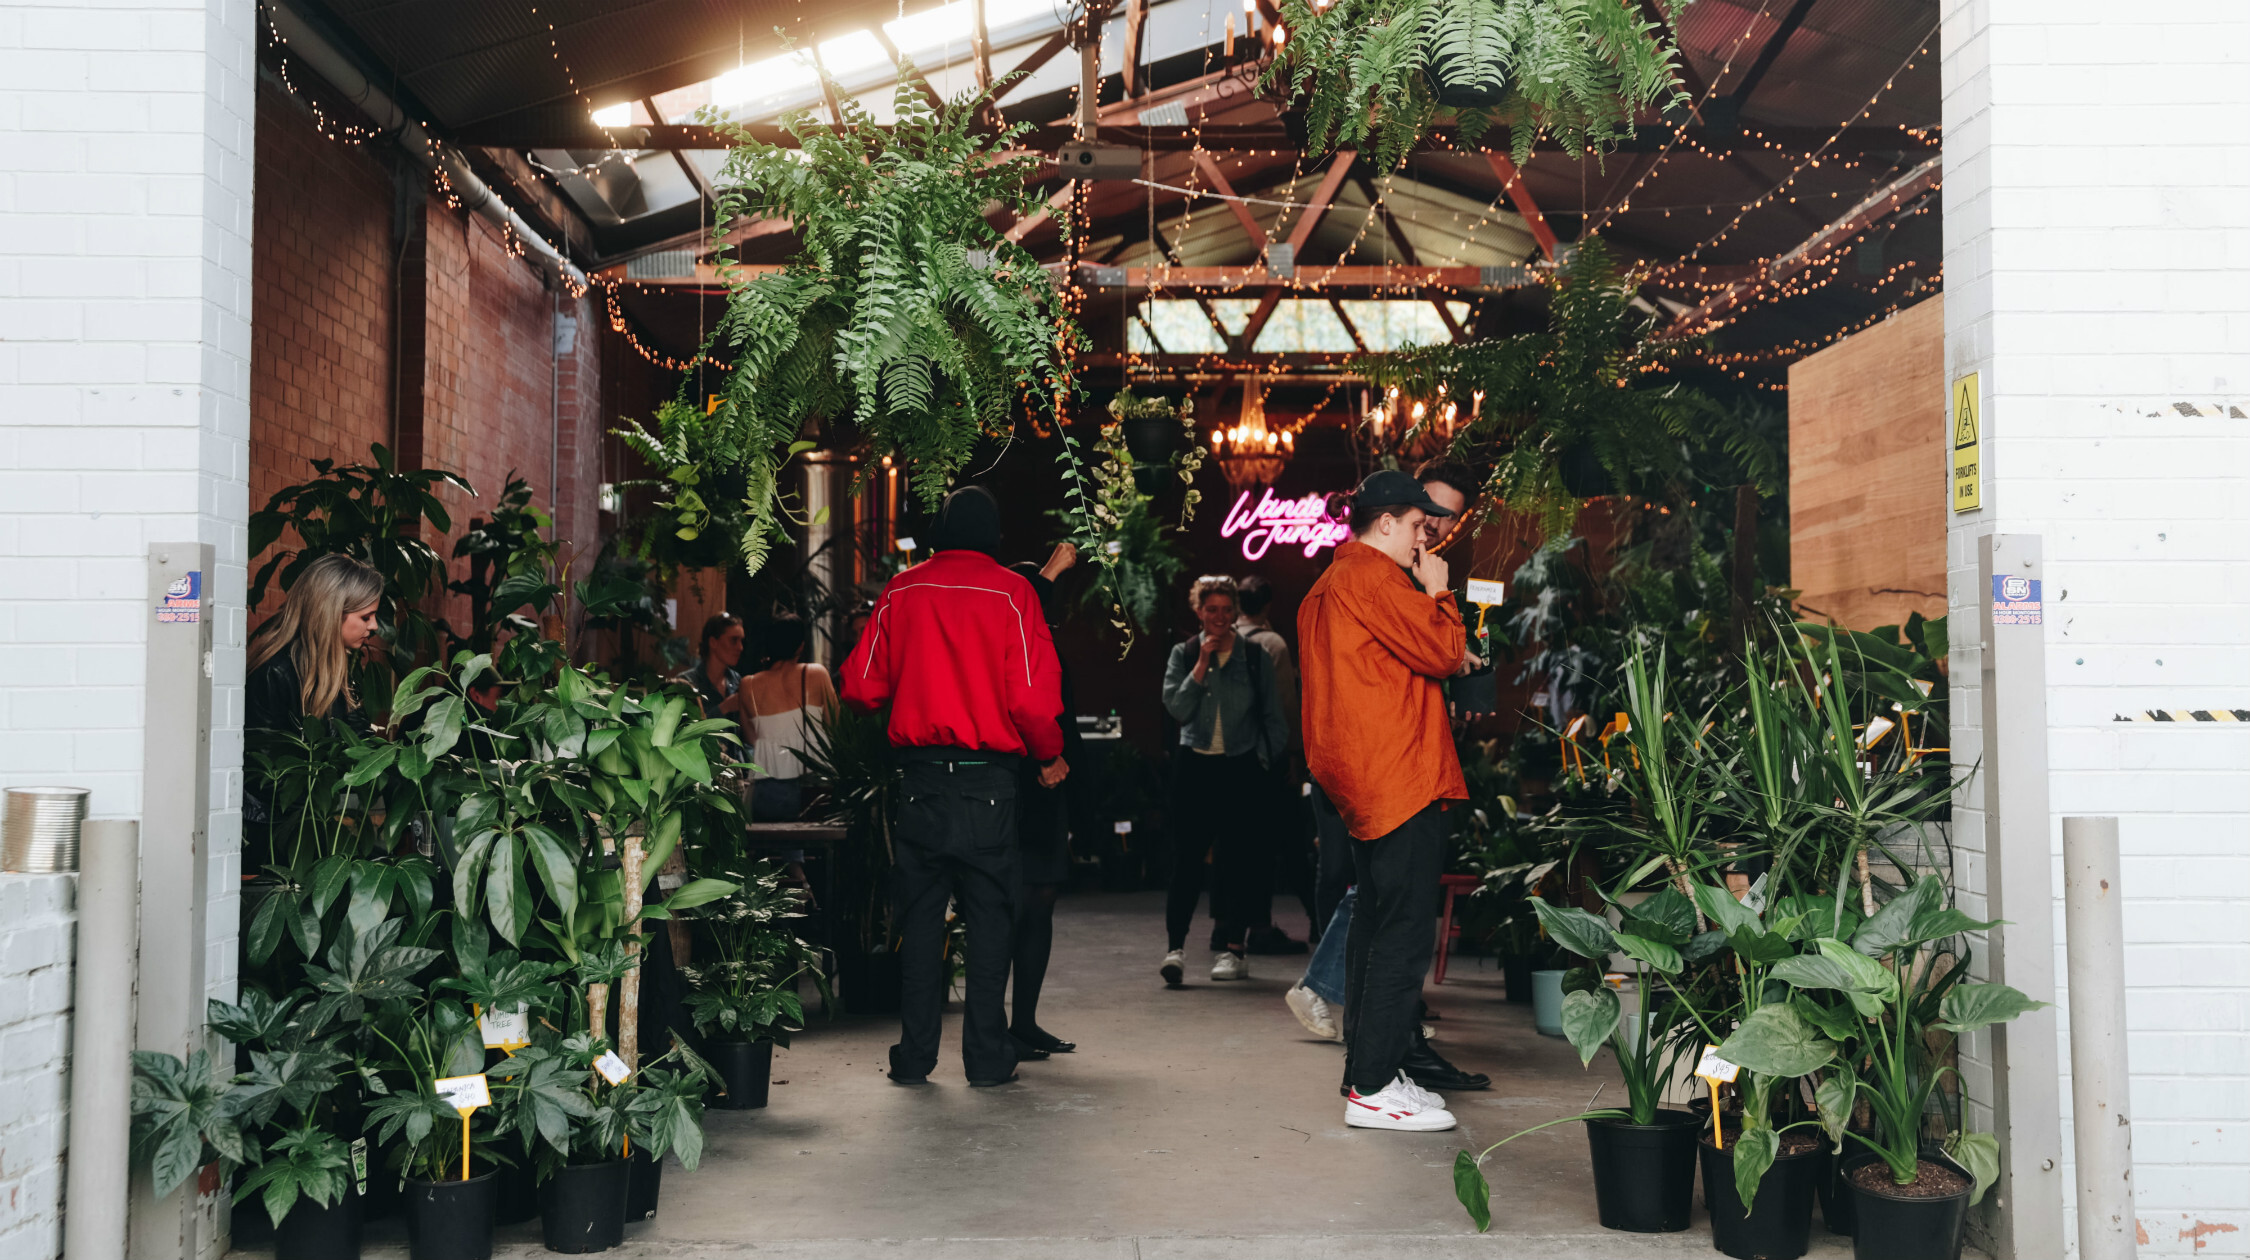 People wandering around garage filled with plants